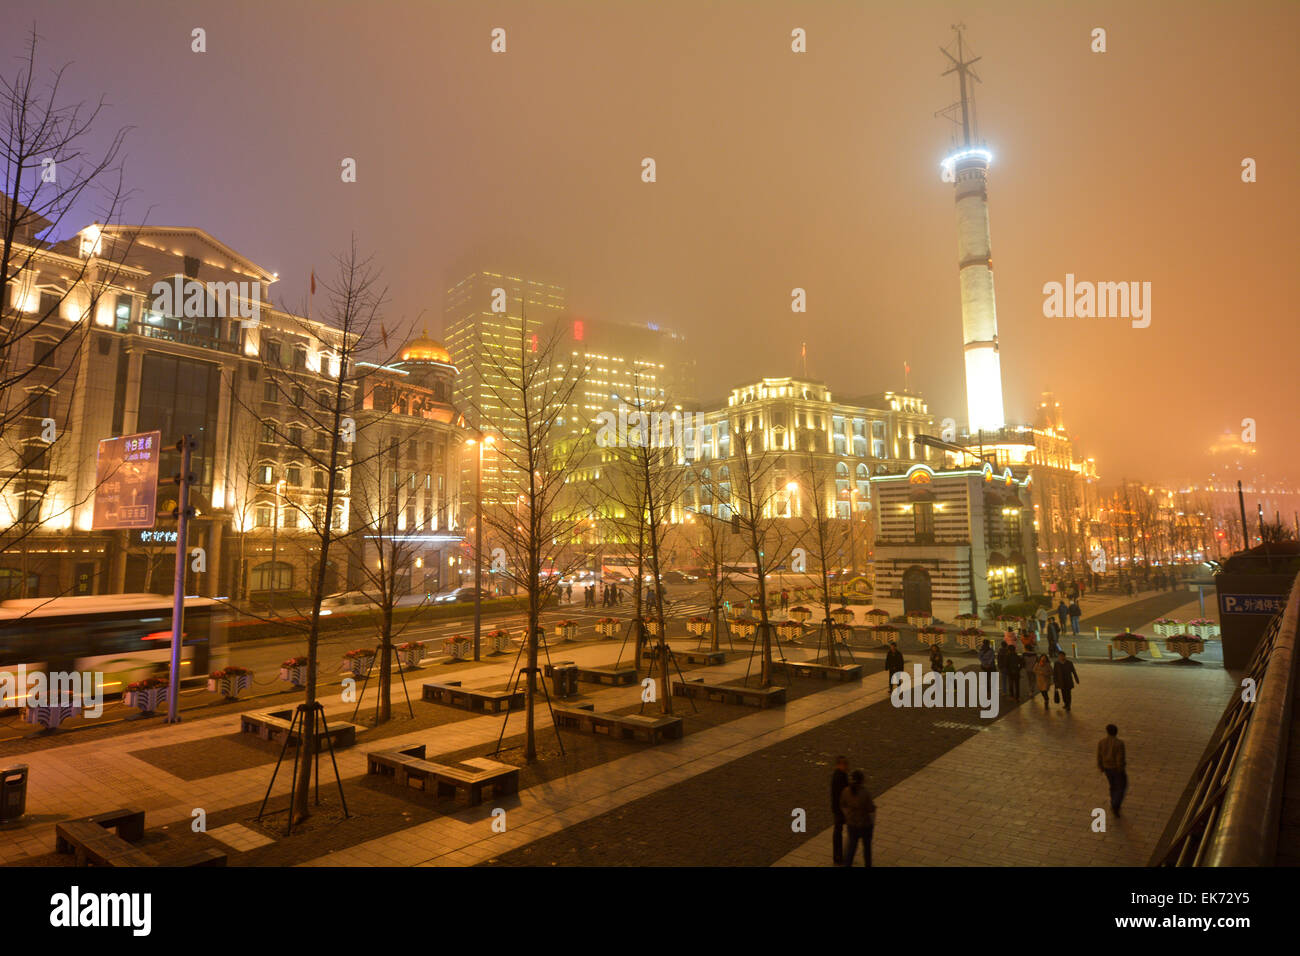 SHANGHAI, CN - MAR 16 2015:Visitors on Shanghai - The Bund or Waitan on foggy night.Shanghai Bund has dozens of historical buildings and It is one of the most famous tourist destinations in Shanghai. Stock Photo